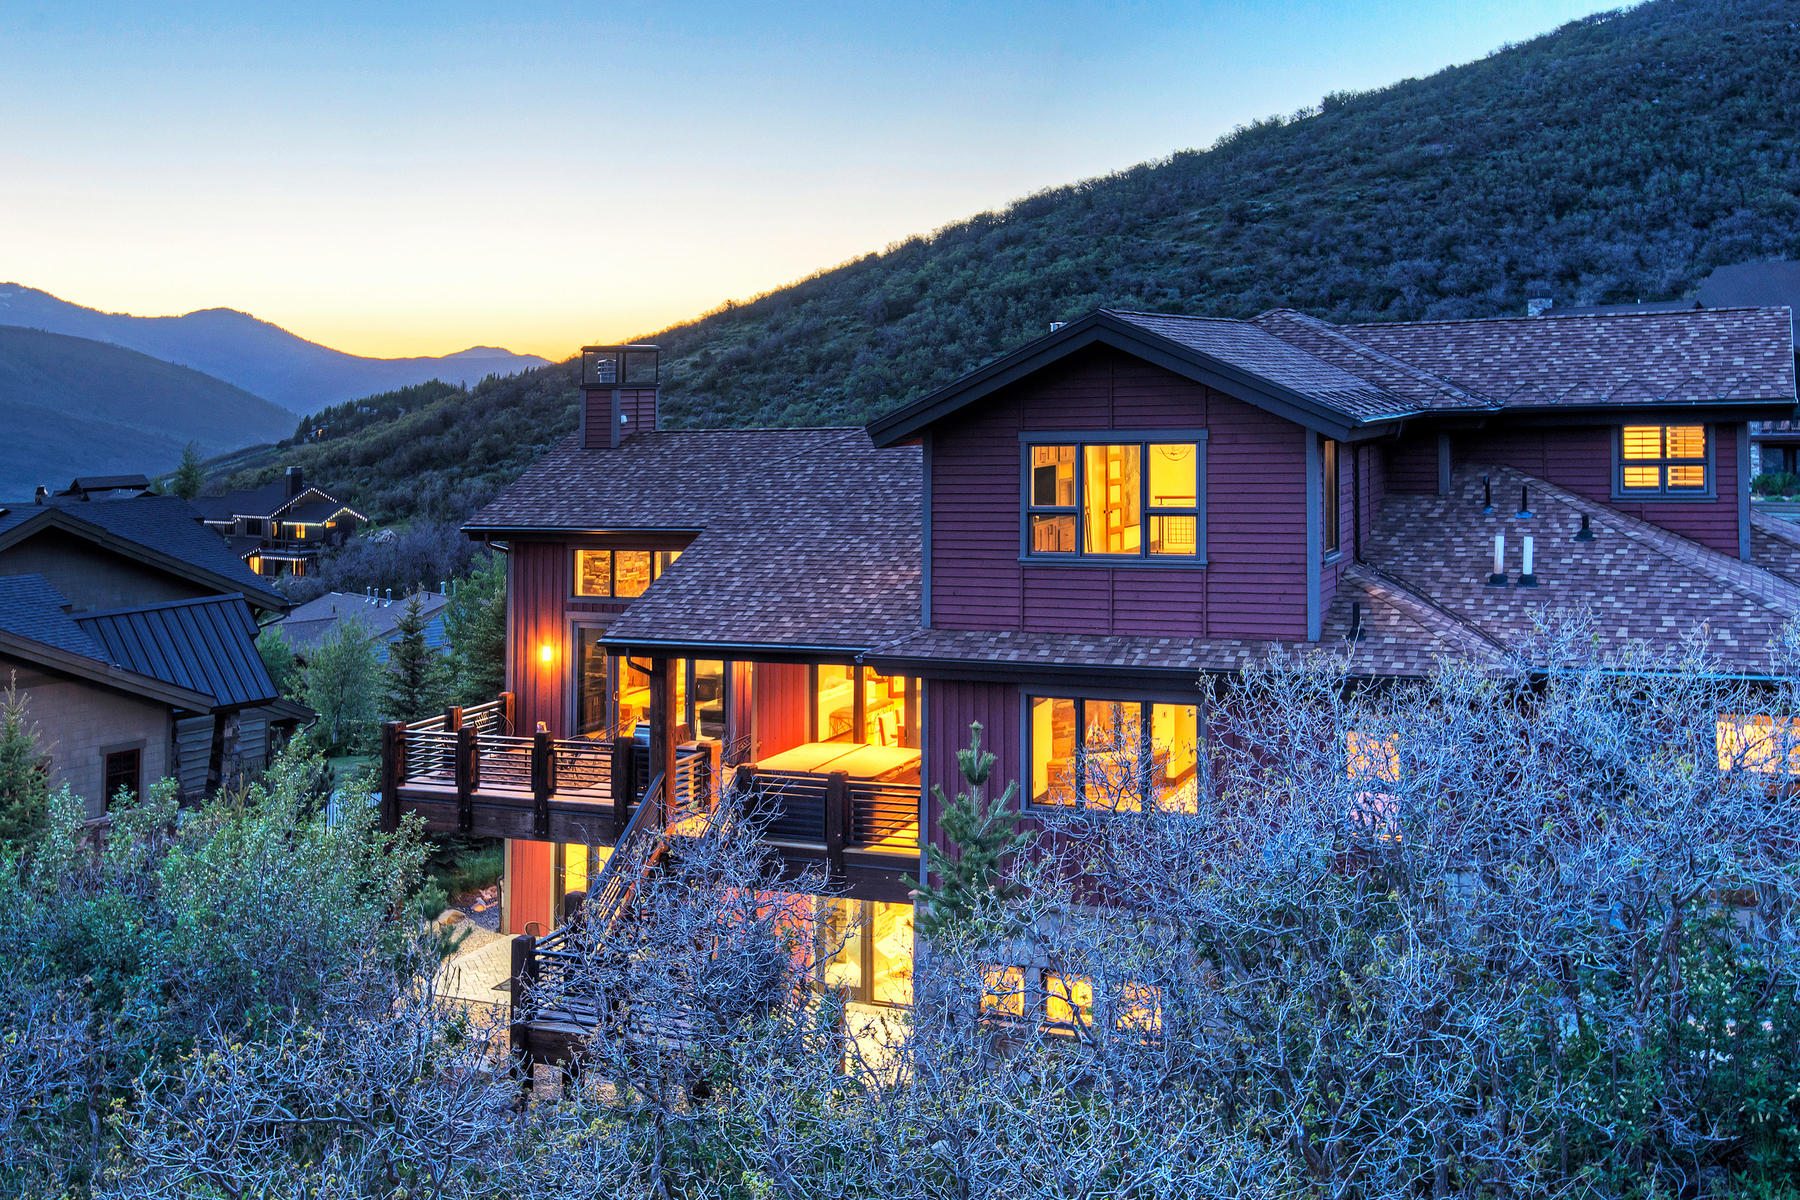 Single Family Home for Sale at Fresh Mountain Modern with Incredible Views 1468 April Mountain Dr Park City, Utah 84060 United States